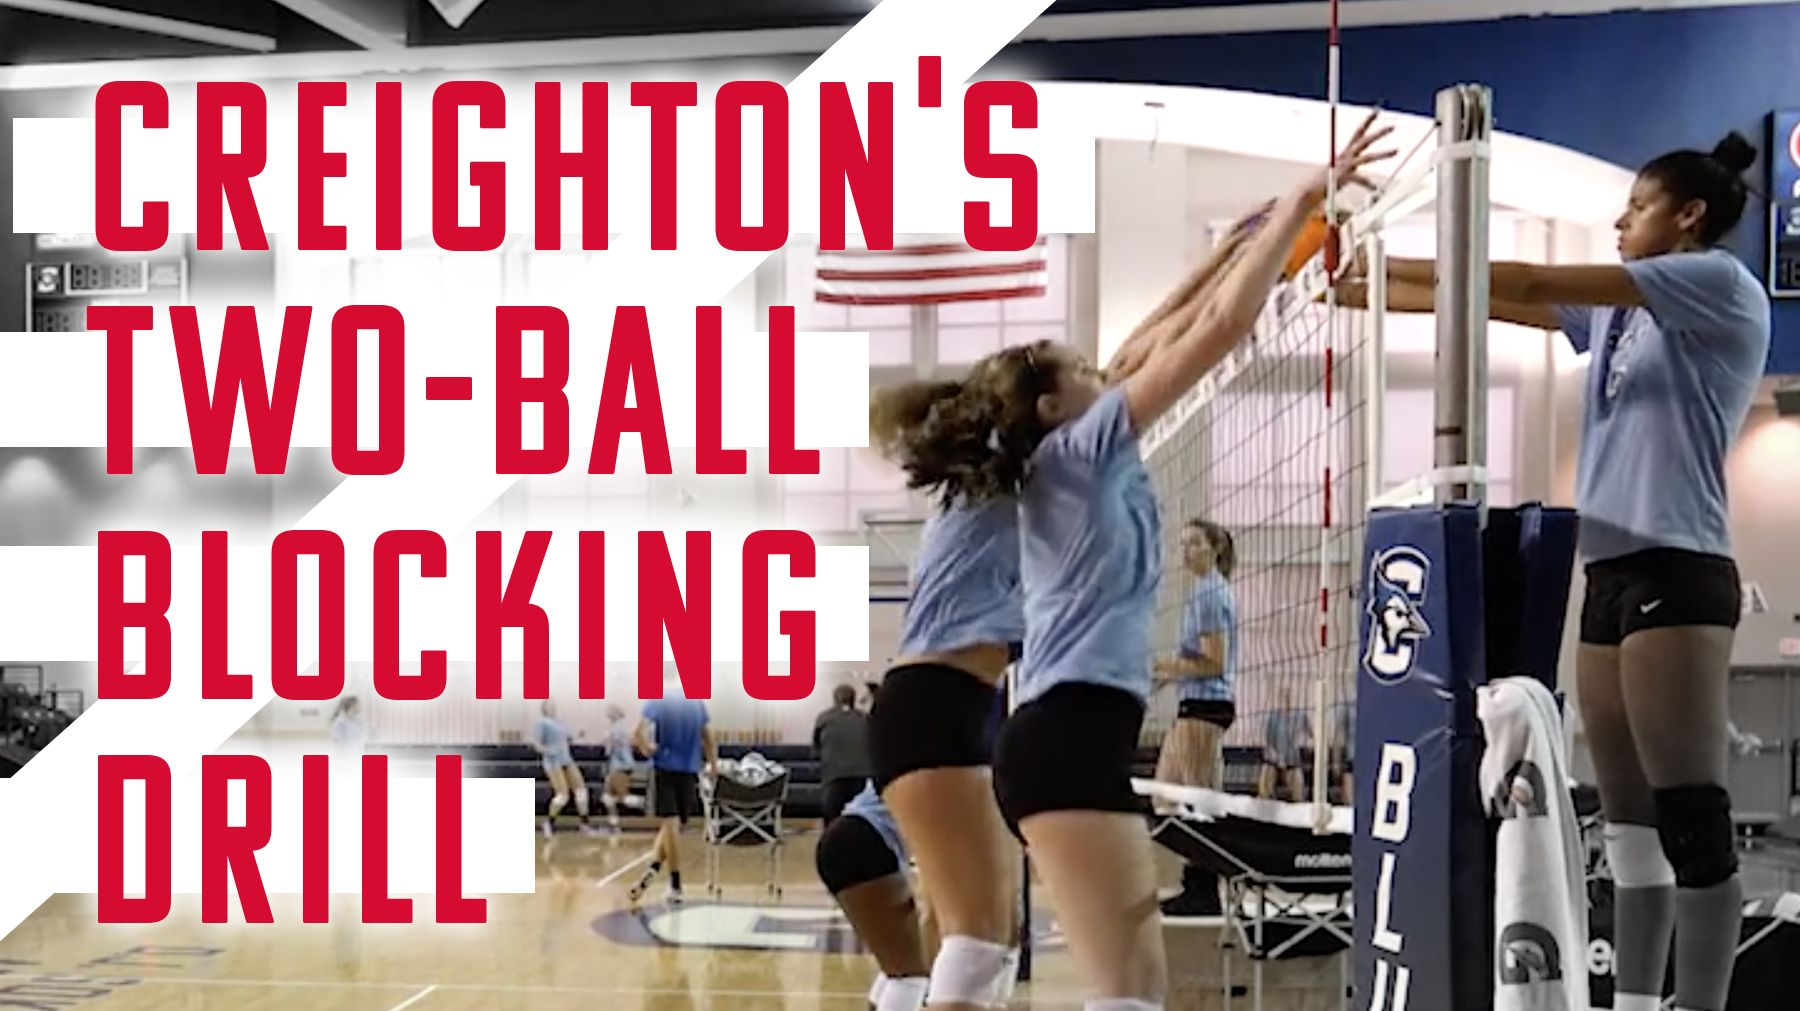 Keep Your Pin Blockers Focused On Getting All The Way To The Hitter And Getting Their Hips Cl Coaching Volleyball Volleyball Quotes Volleyball Drills